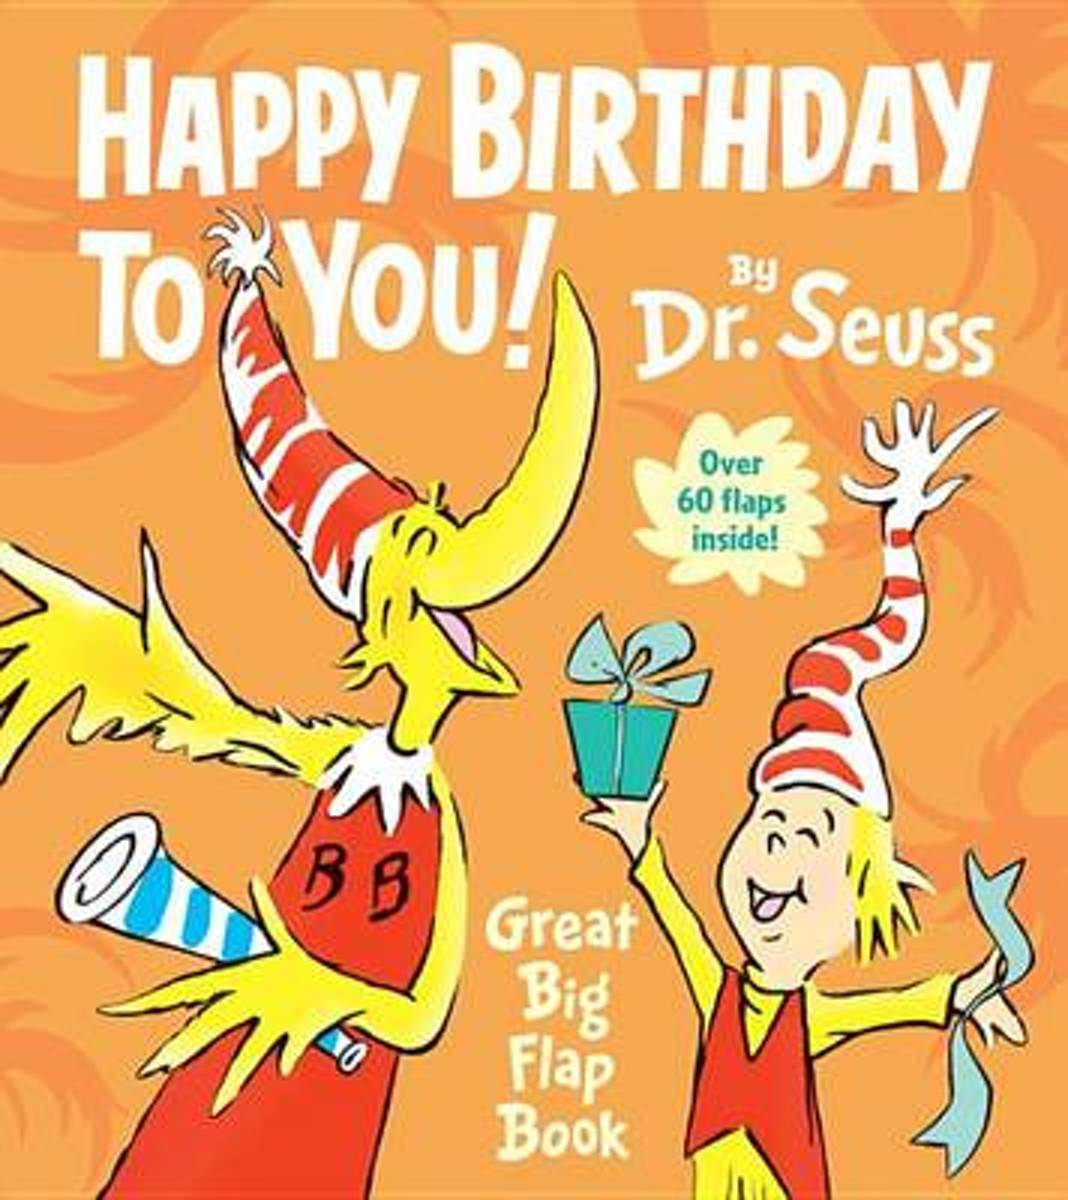 Happy Birthday to You! Great Big Flap Book